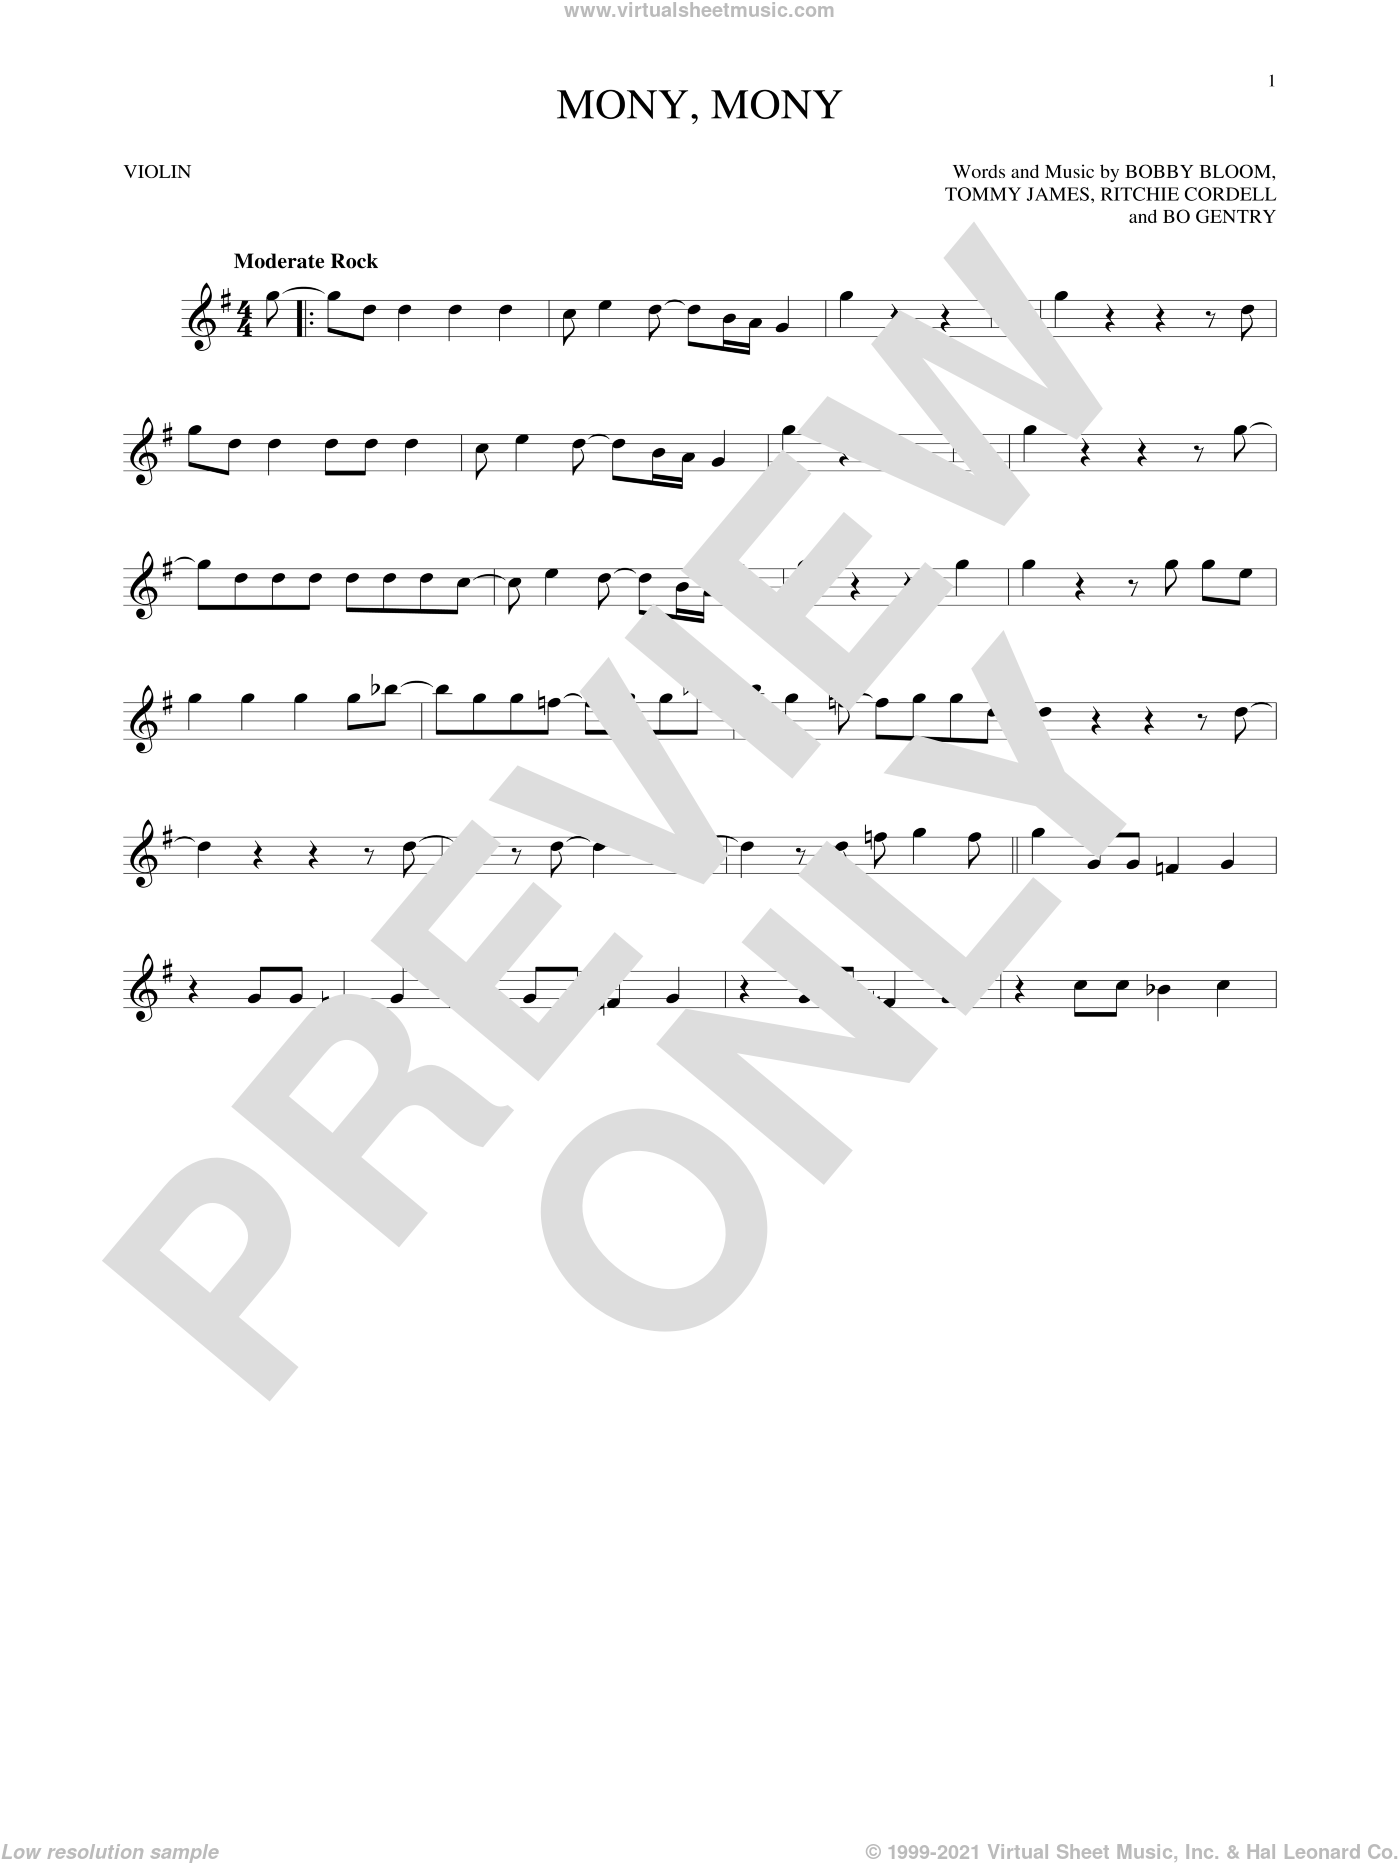 Mony, Mony sheet music for violin solo by Tommy James & The Shondells, Bobby Bloom and Ritchie Cordell, intermediate. Score Image Preview.